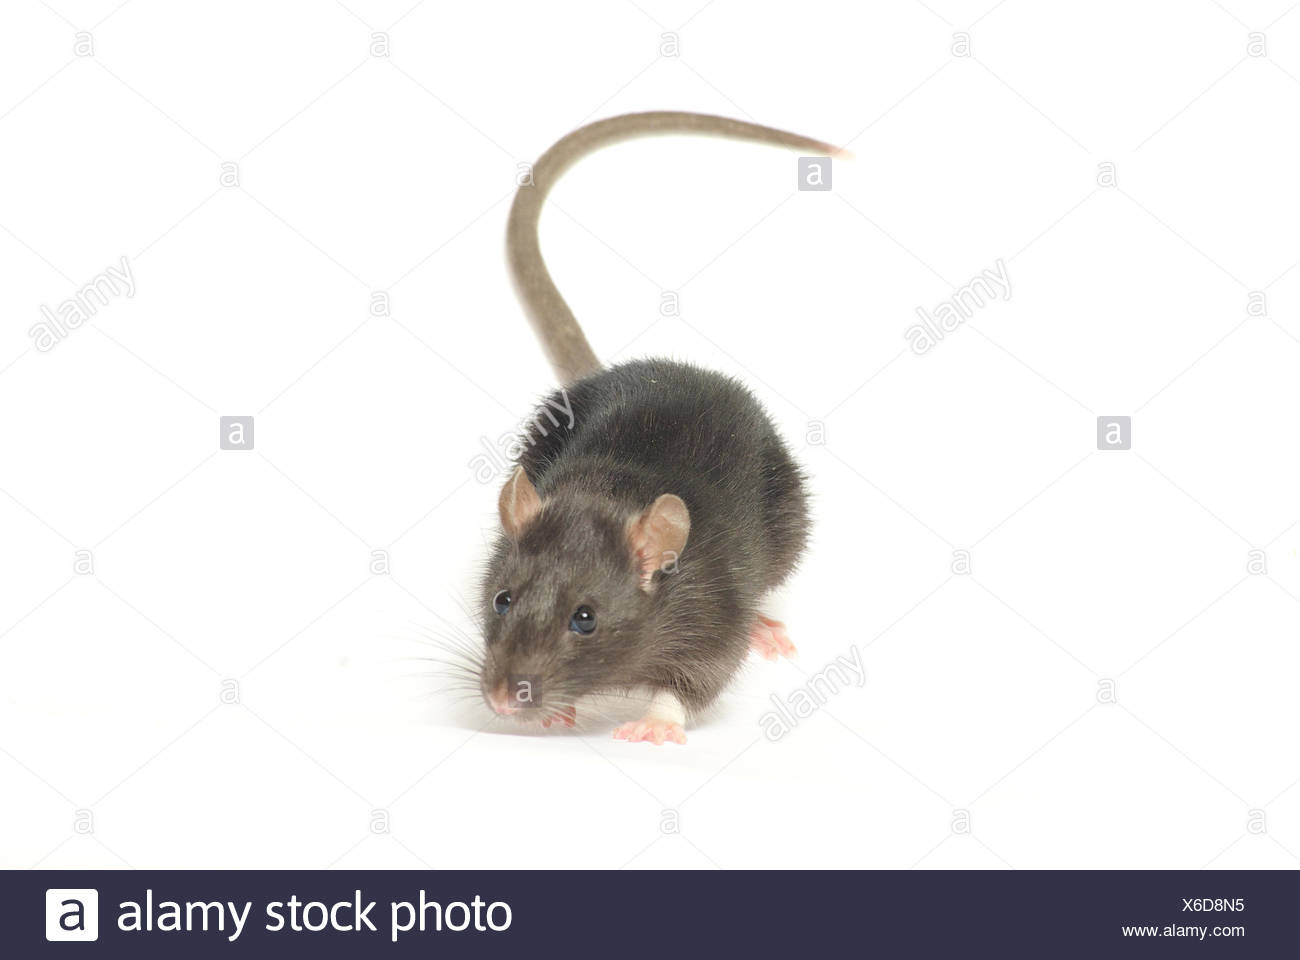 Rodent hairy tail grey